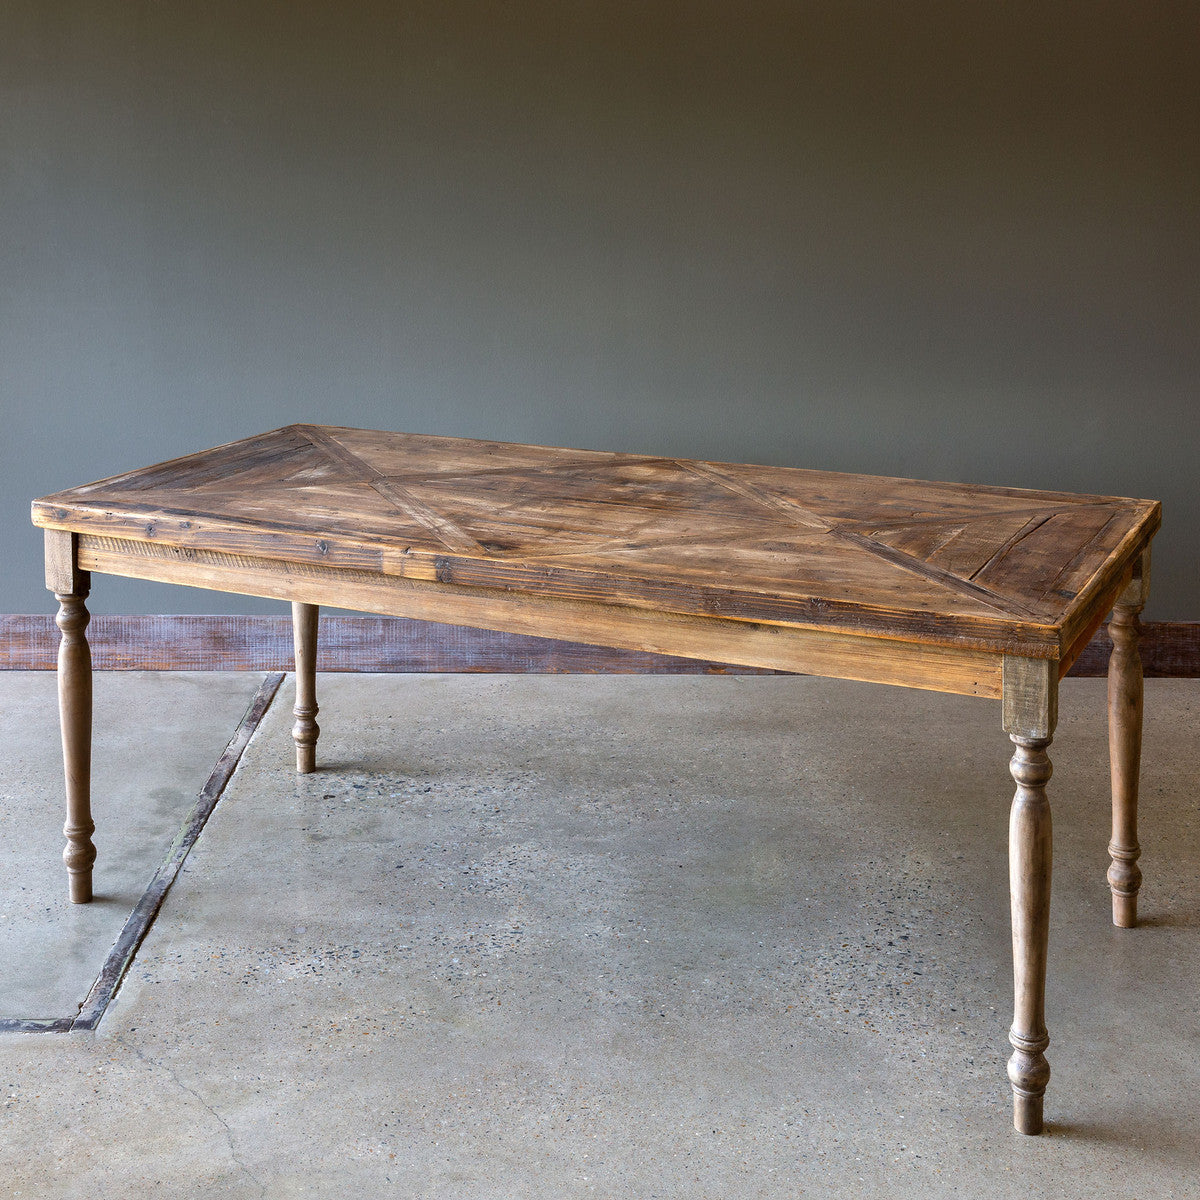 Lovecup Reclaimed Wood Farm Dining Table L991